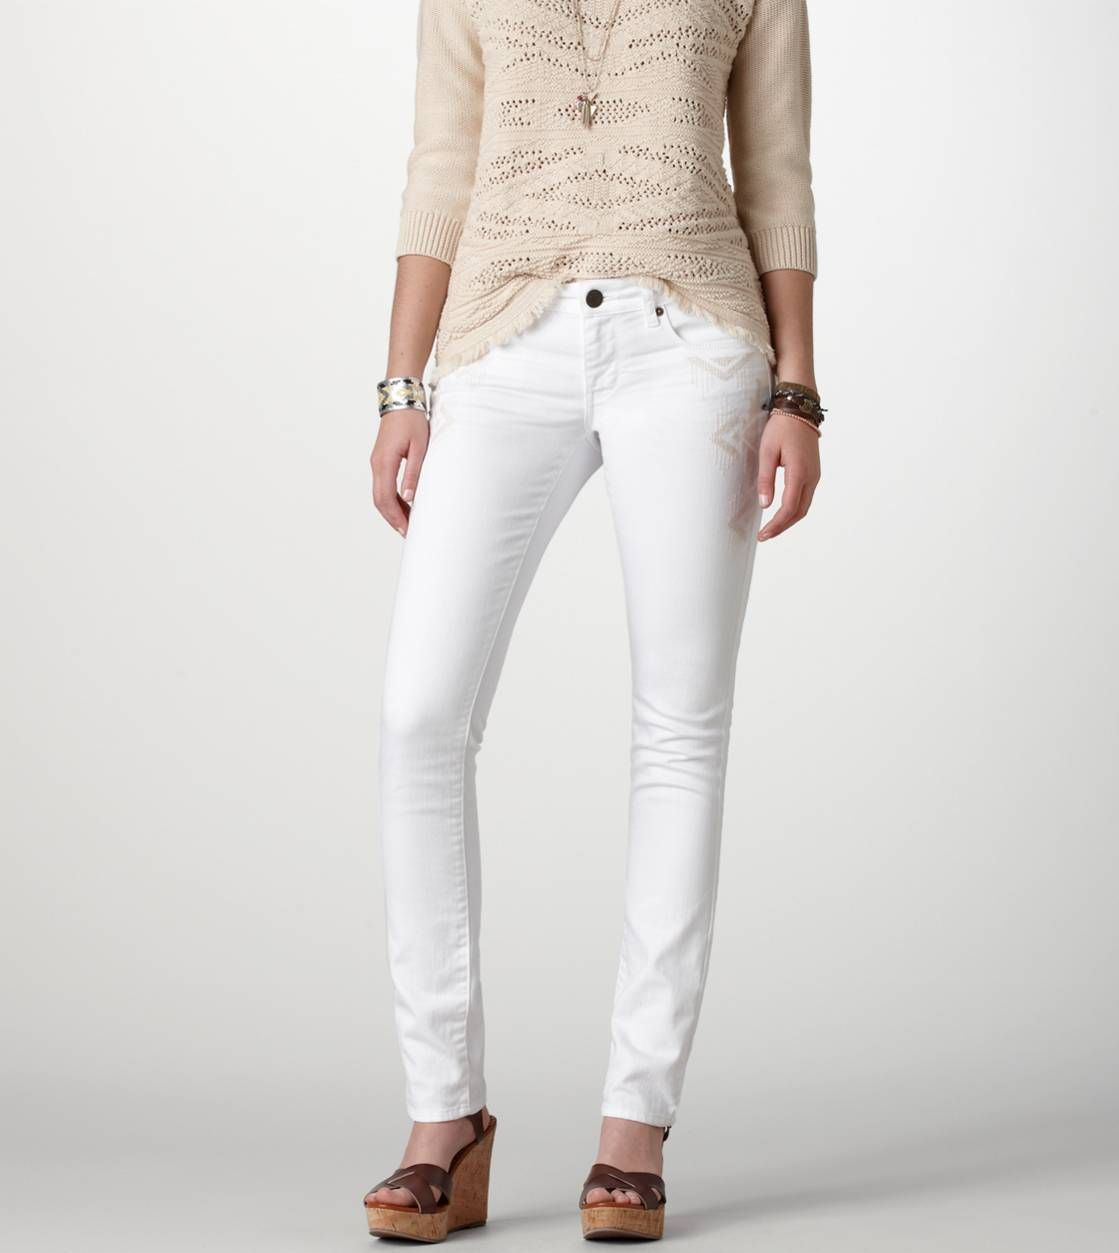 White Skinny Jeans / American Eagle Outfitters Size 2 or waist 25 ...